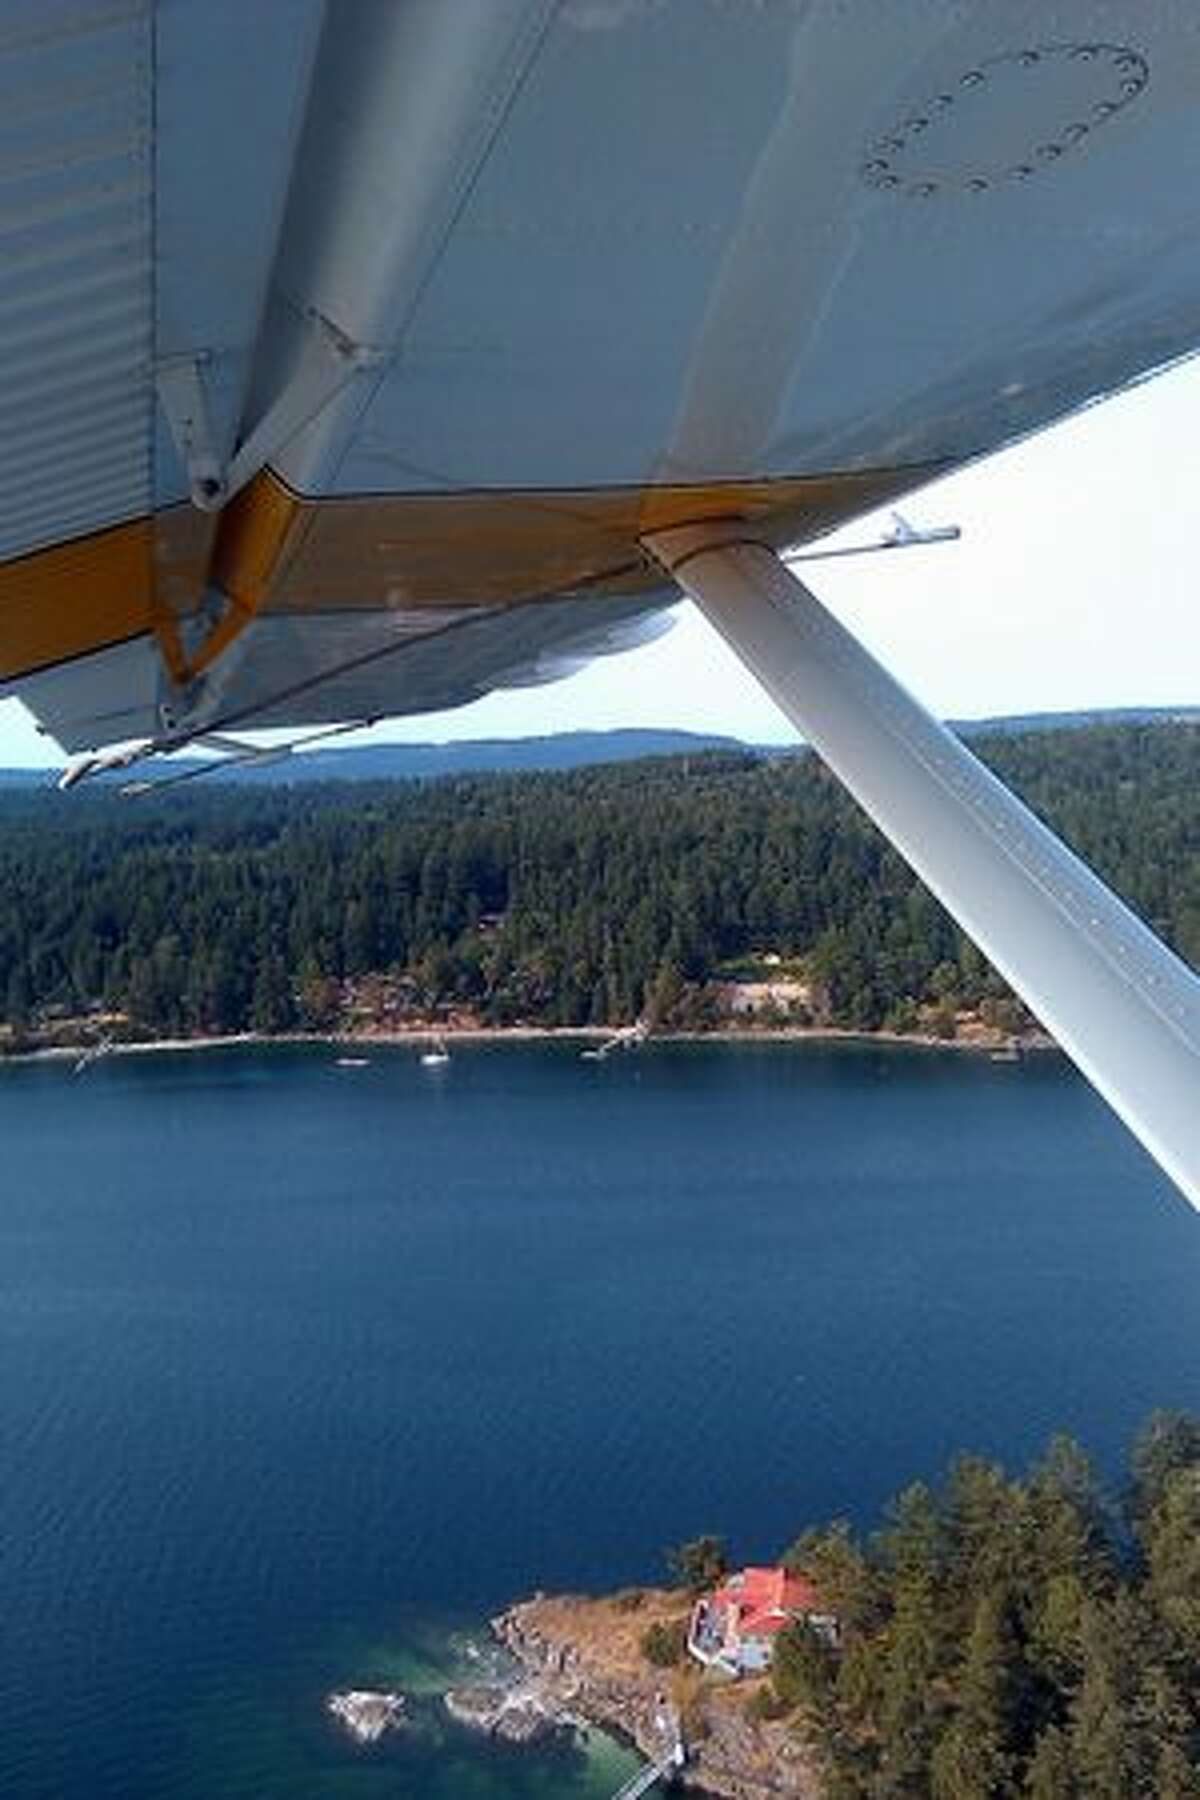 The from a Kenmore Air de Havilland Beaver shortly after takeoff from Ganges, B.C., to Lake Union, in Seattle, Wa.